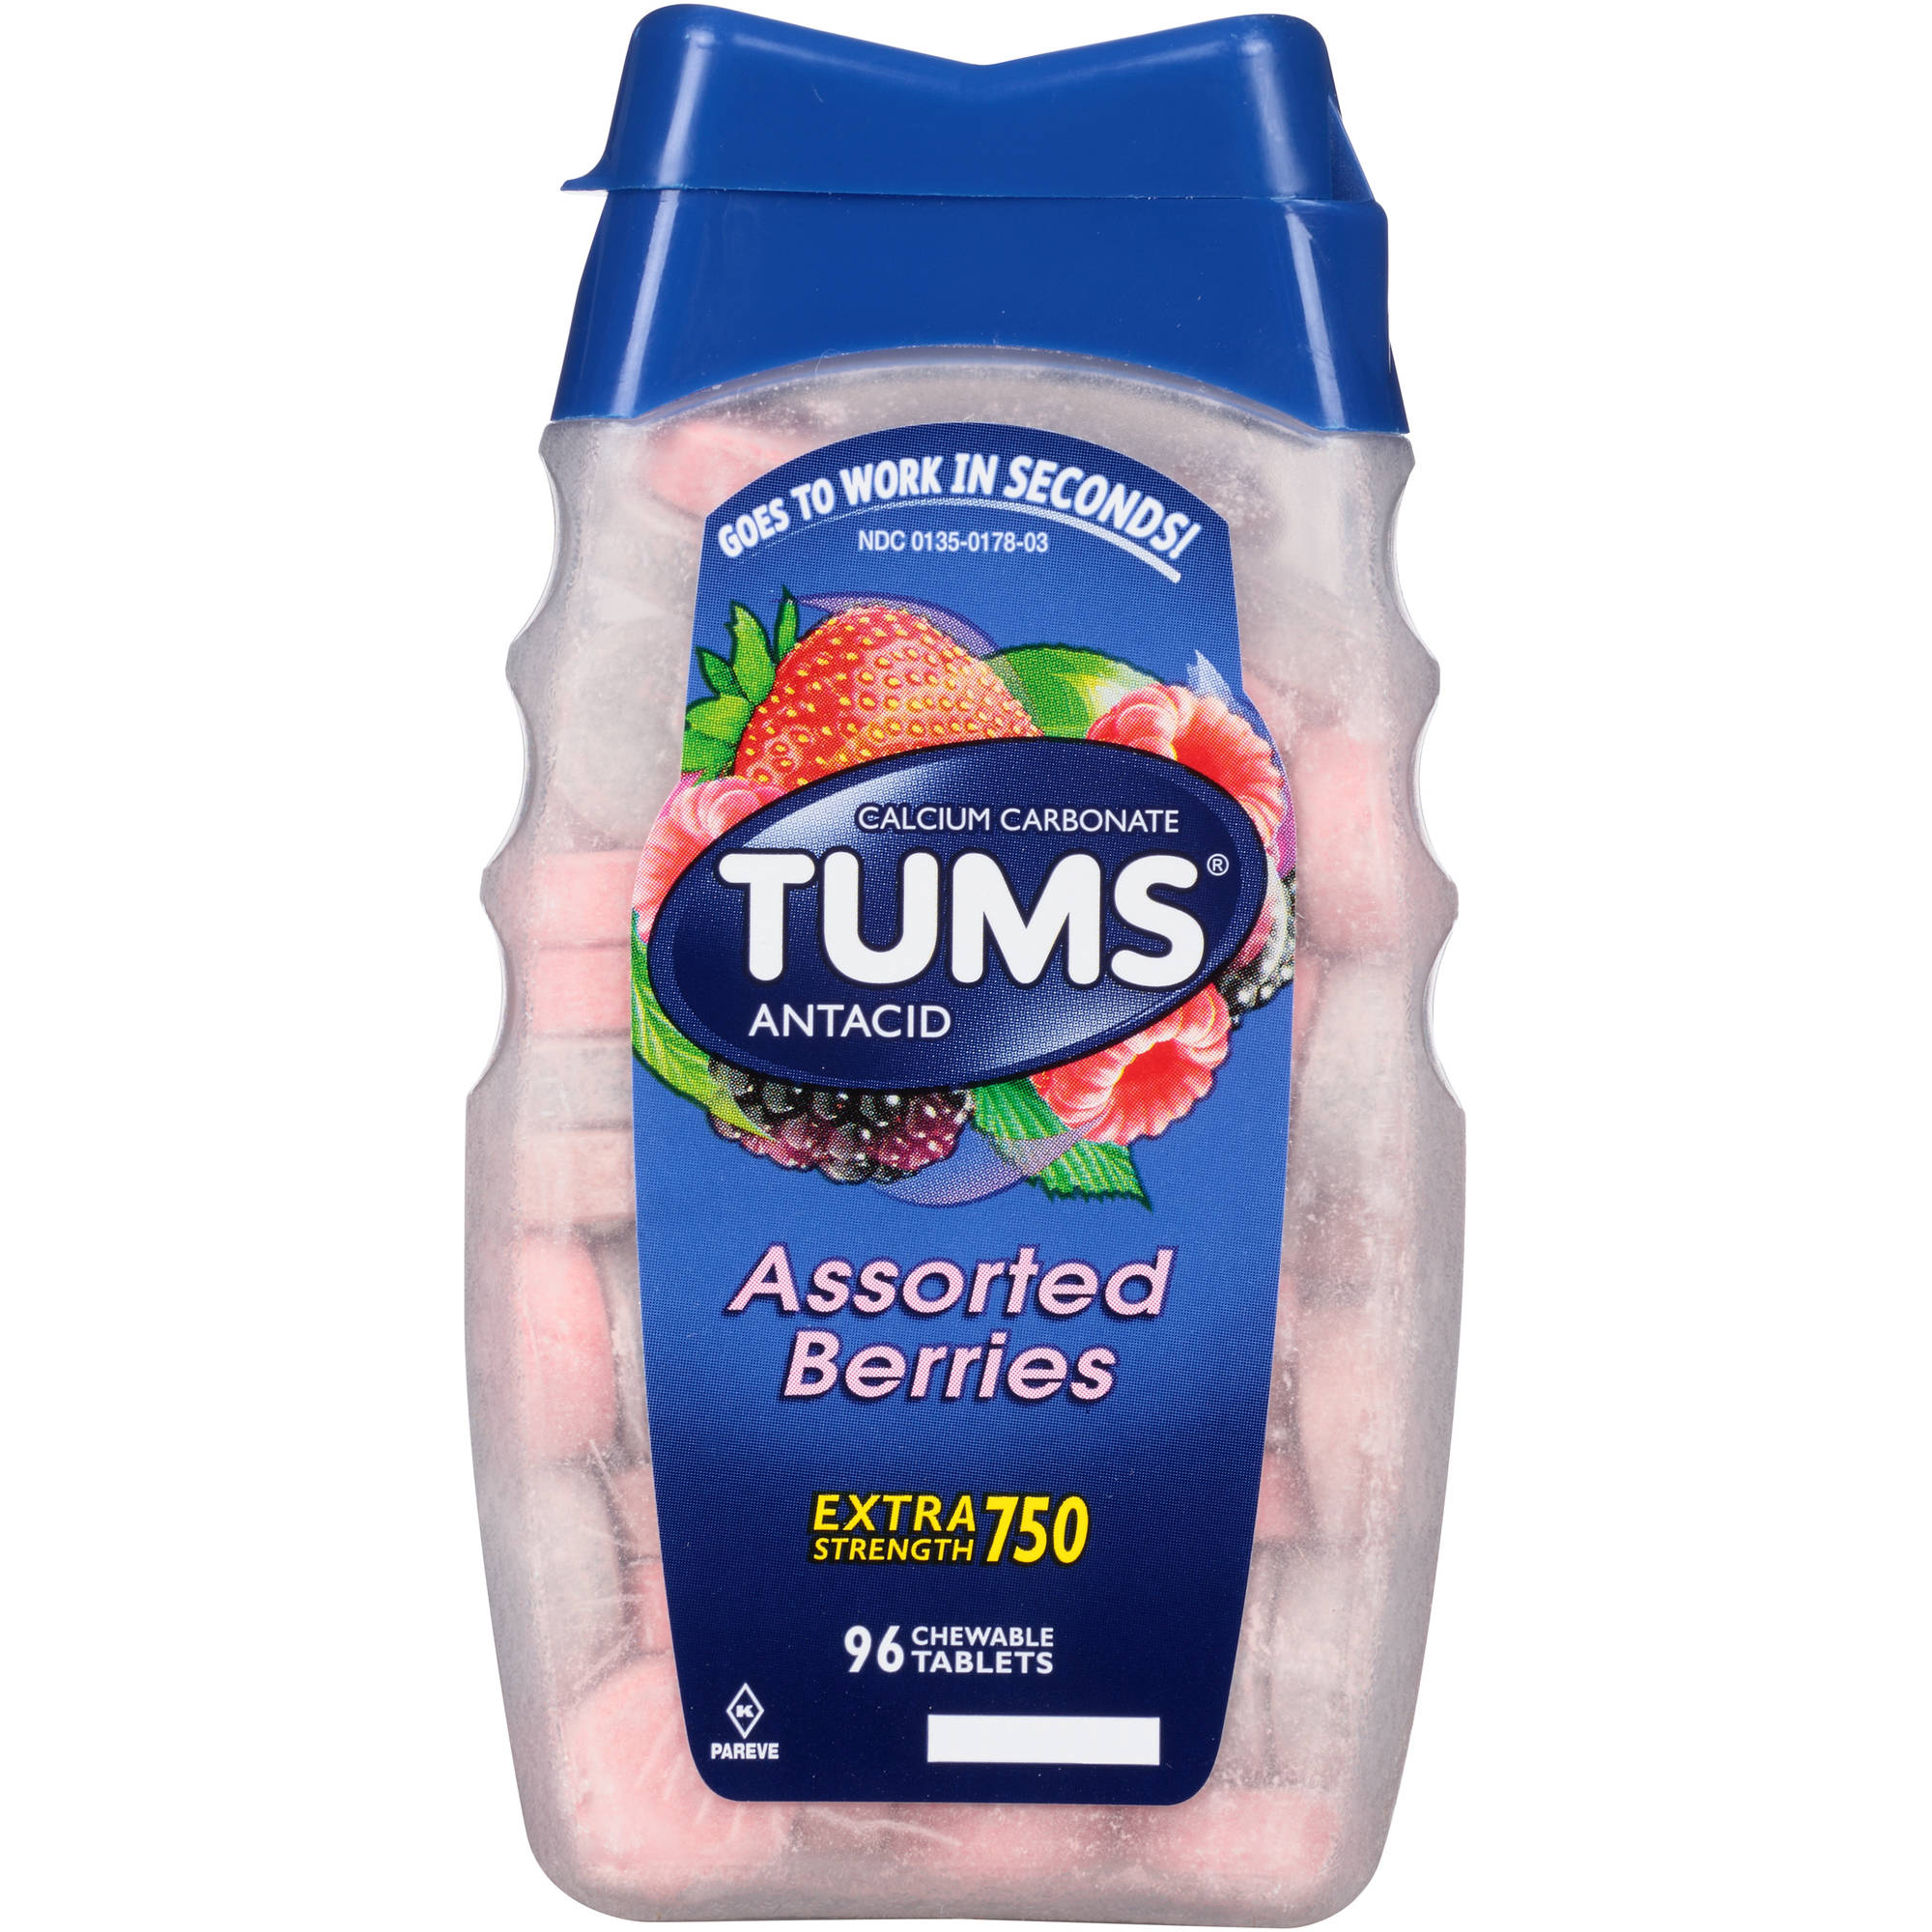 TUMS Extra Strength 750 Antacid Relief Calcium Chewable Tablets, Assorted Berries Flavor, 750mg, 96 Tablets